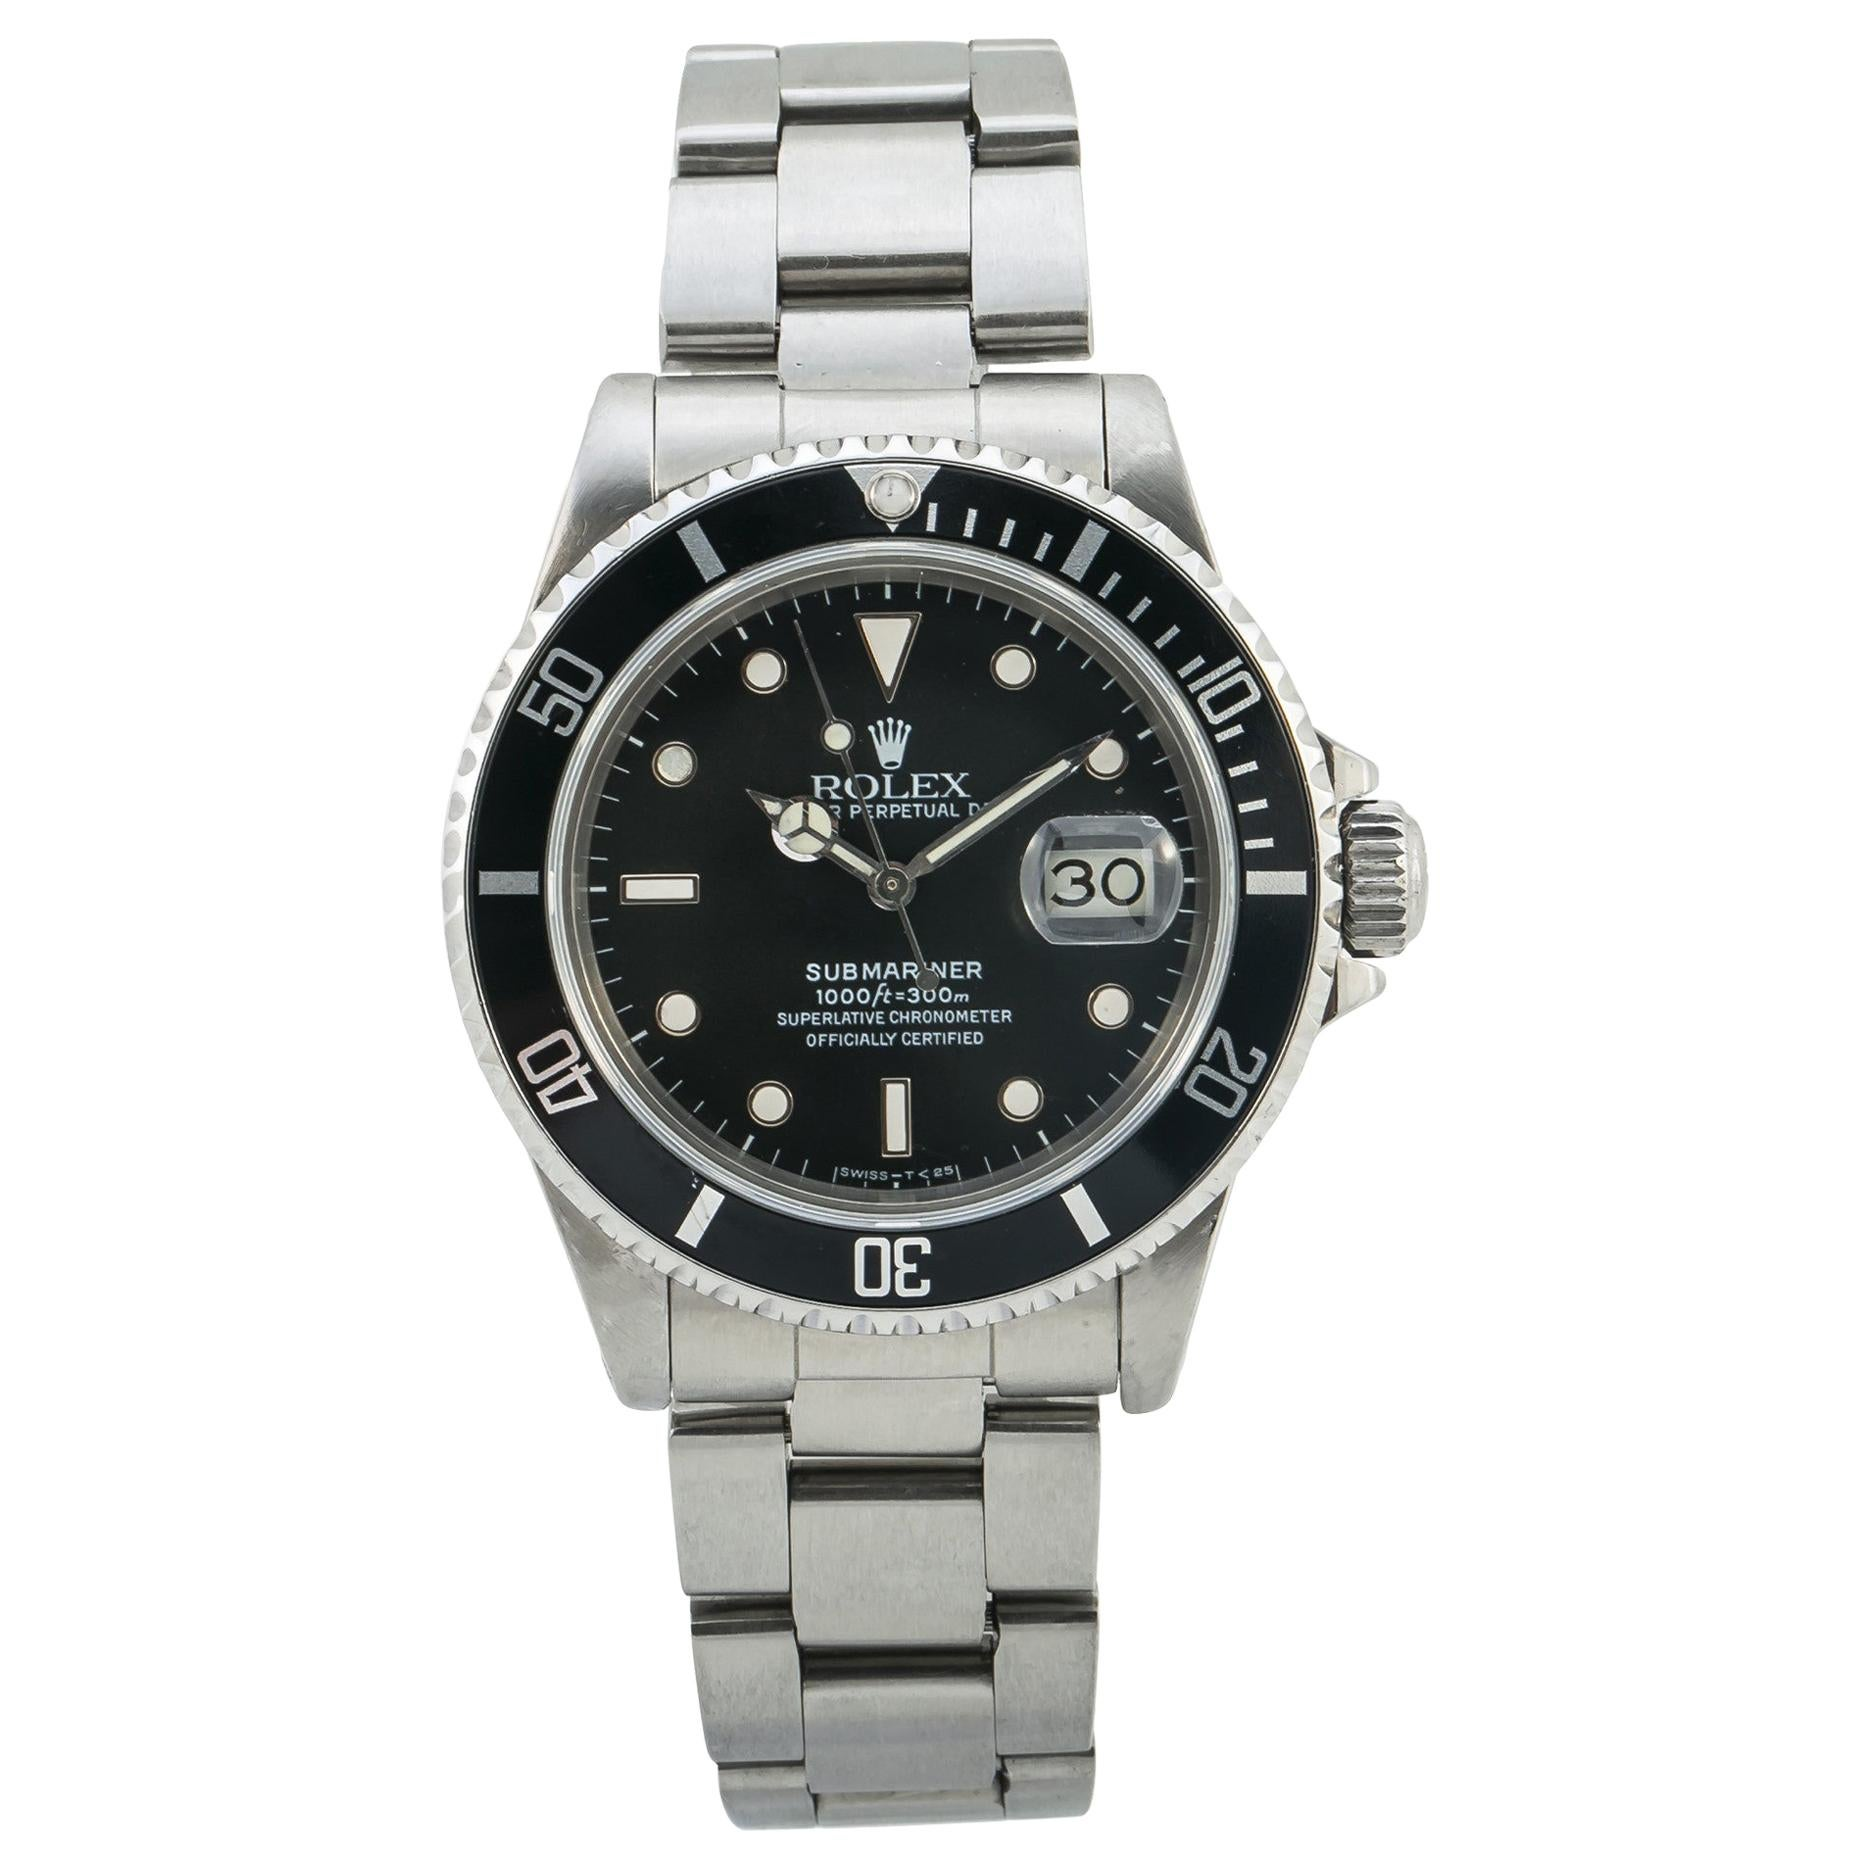 Rolex Submariner 16800, Black Dial, Certified and Warranty